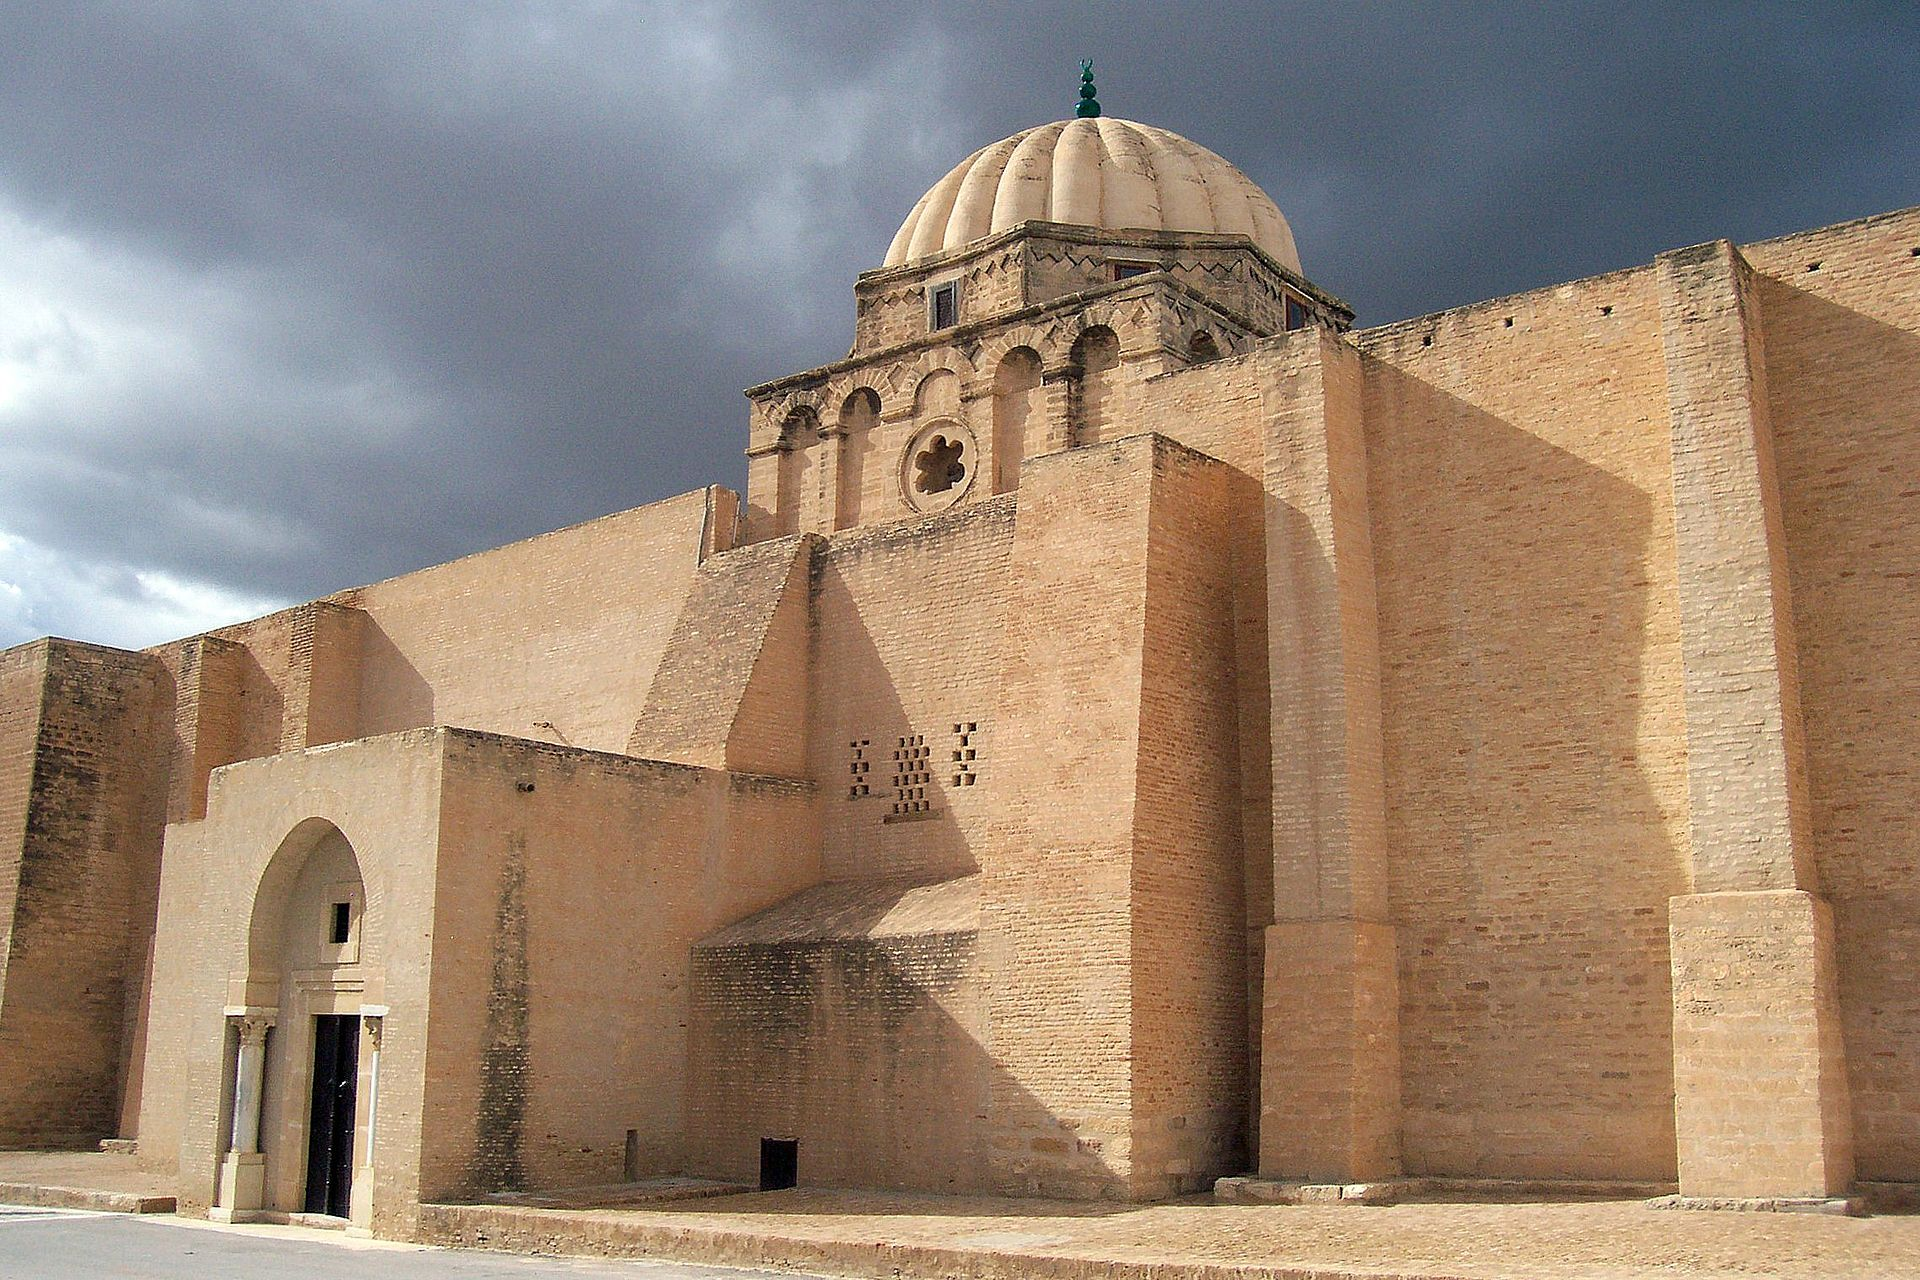 _1920px-Part_of_the_southern_facade_of_the_Great_Mosque_of_Kairouan_671581068818777426.jpg